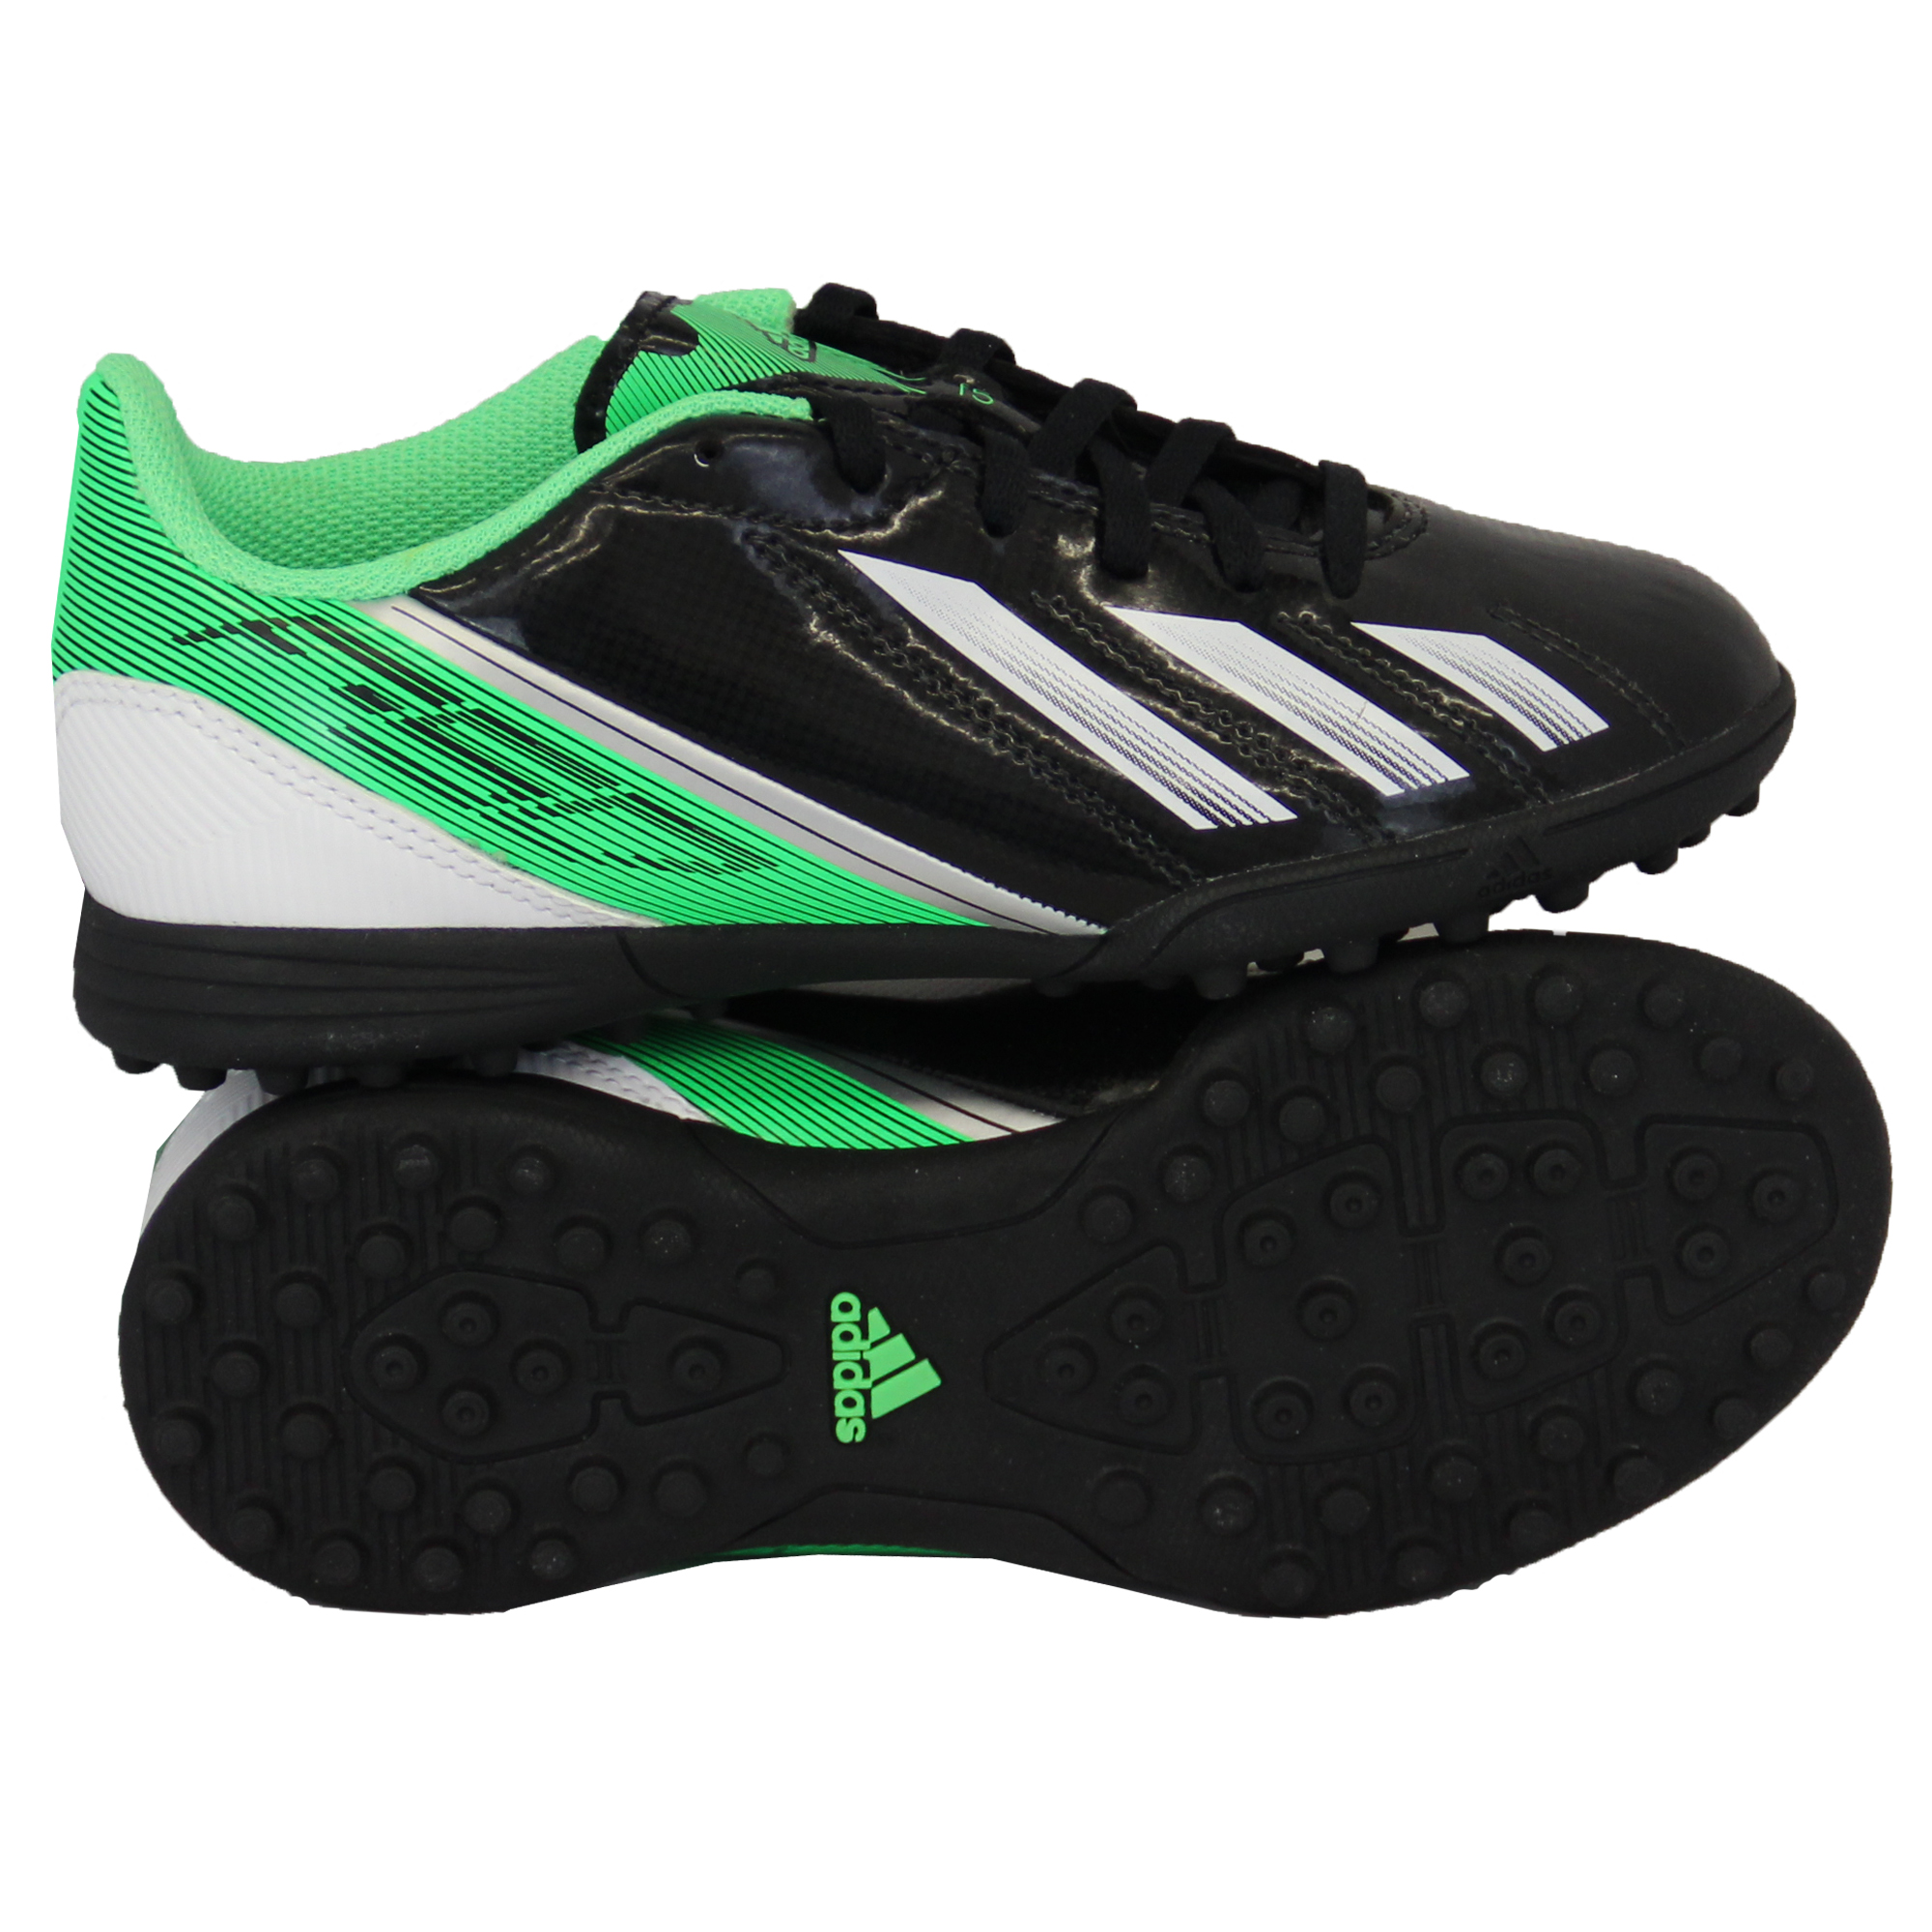 Boys-ADIDAS-Trainers-Kids-Football-Soccer-Astro-Turf-Shoes-Lace-Up-Neon-Youth thumbnail 4